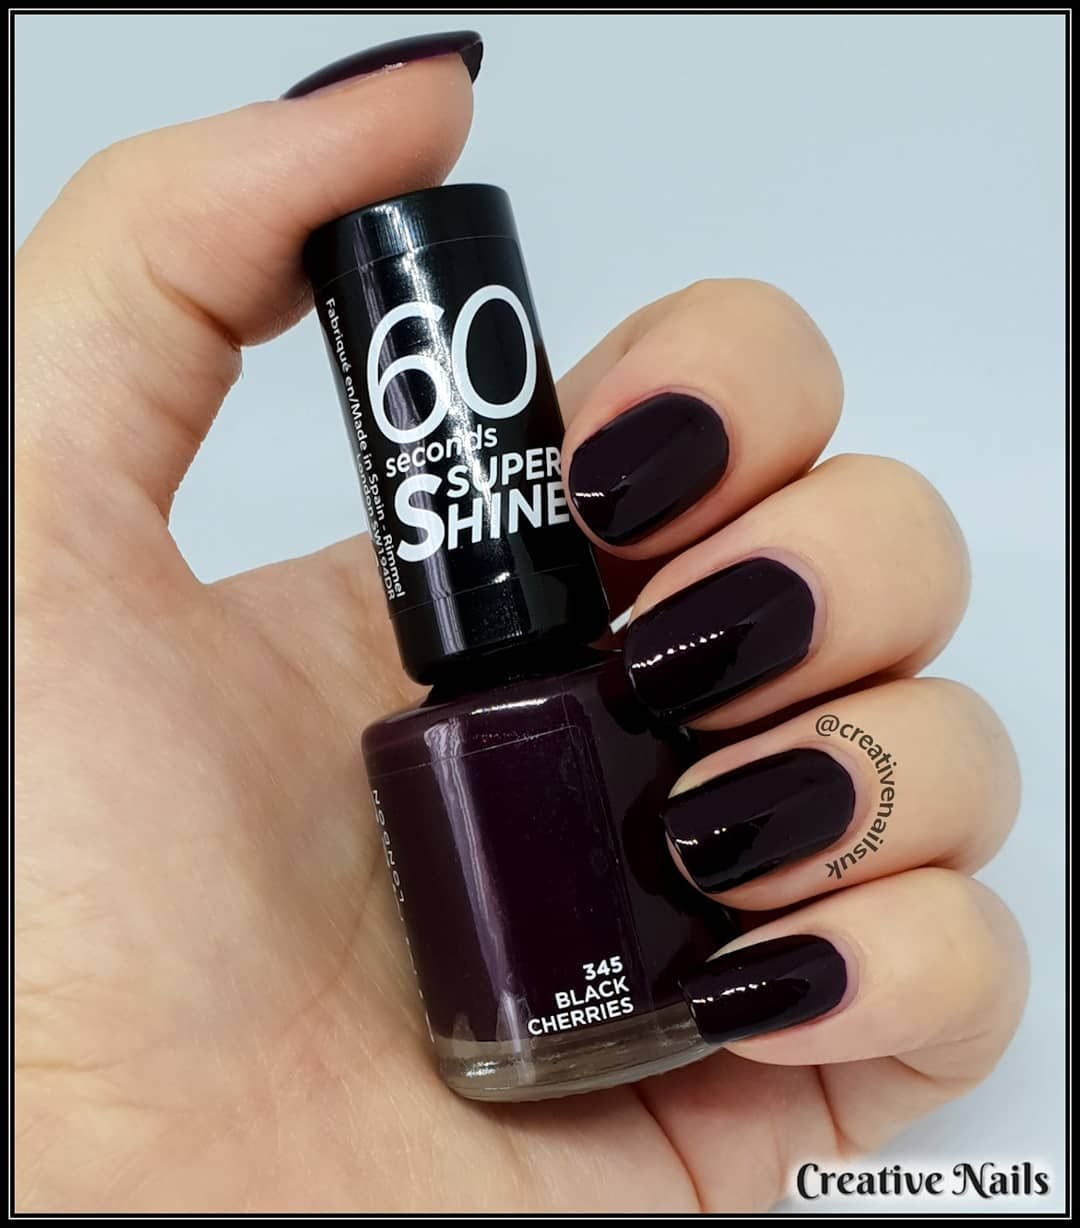 Rimmel London 60 Seconds Super Shine Black Cherries Such A Gorgeous Nail Polish Shade For Your Nails For A Dark Purple Nails Purple Nail Polish Nail Polish